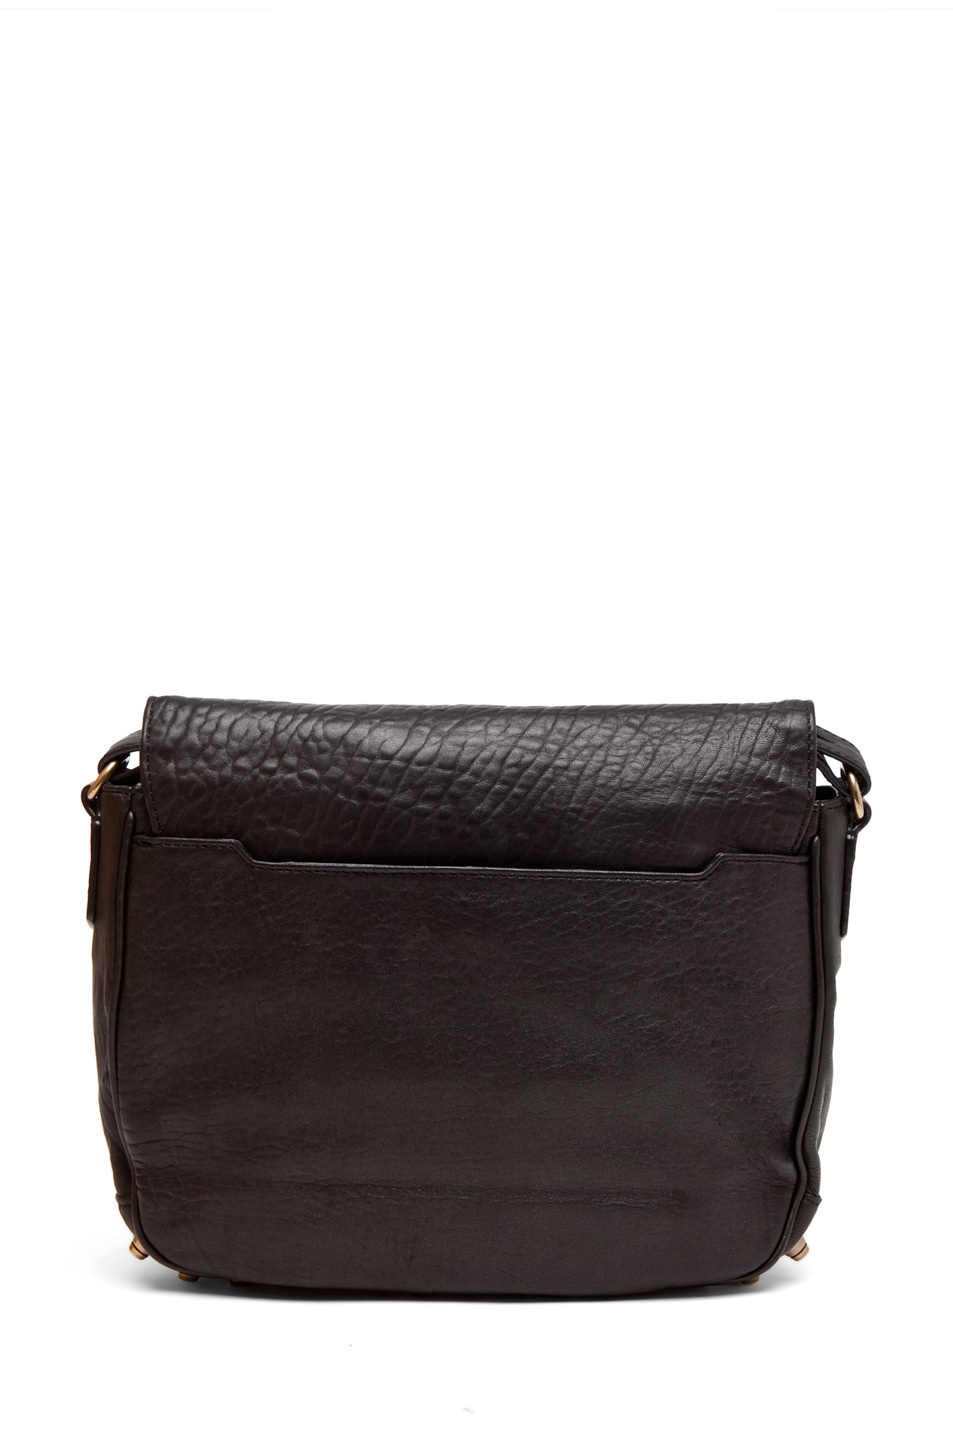 Image 2 of Alexander Wang Lia Sling in Black